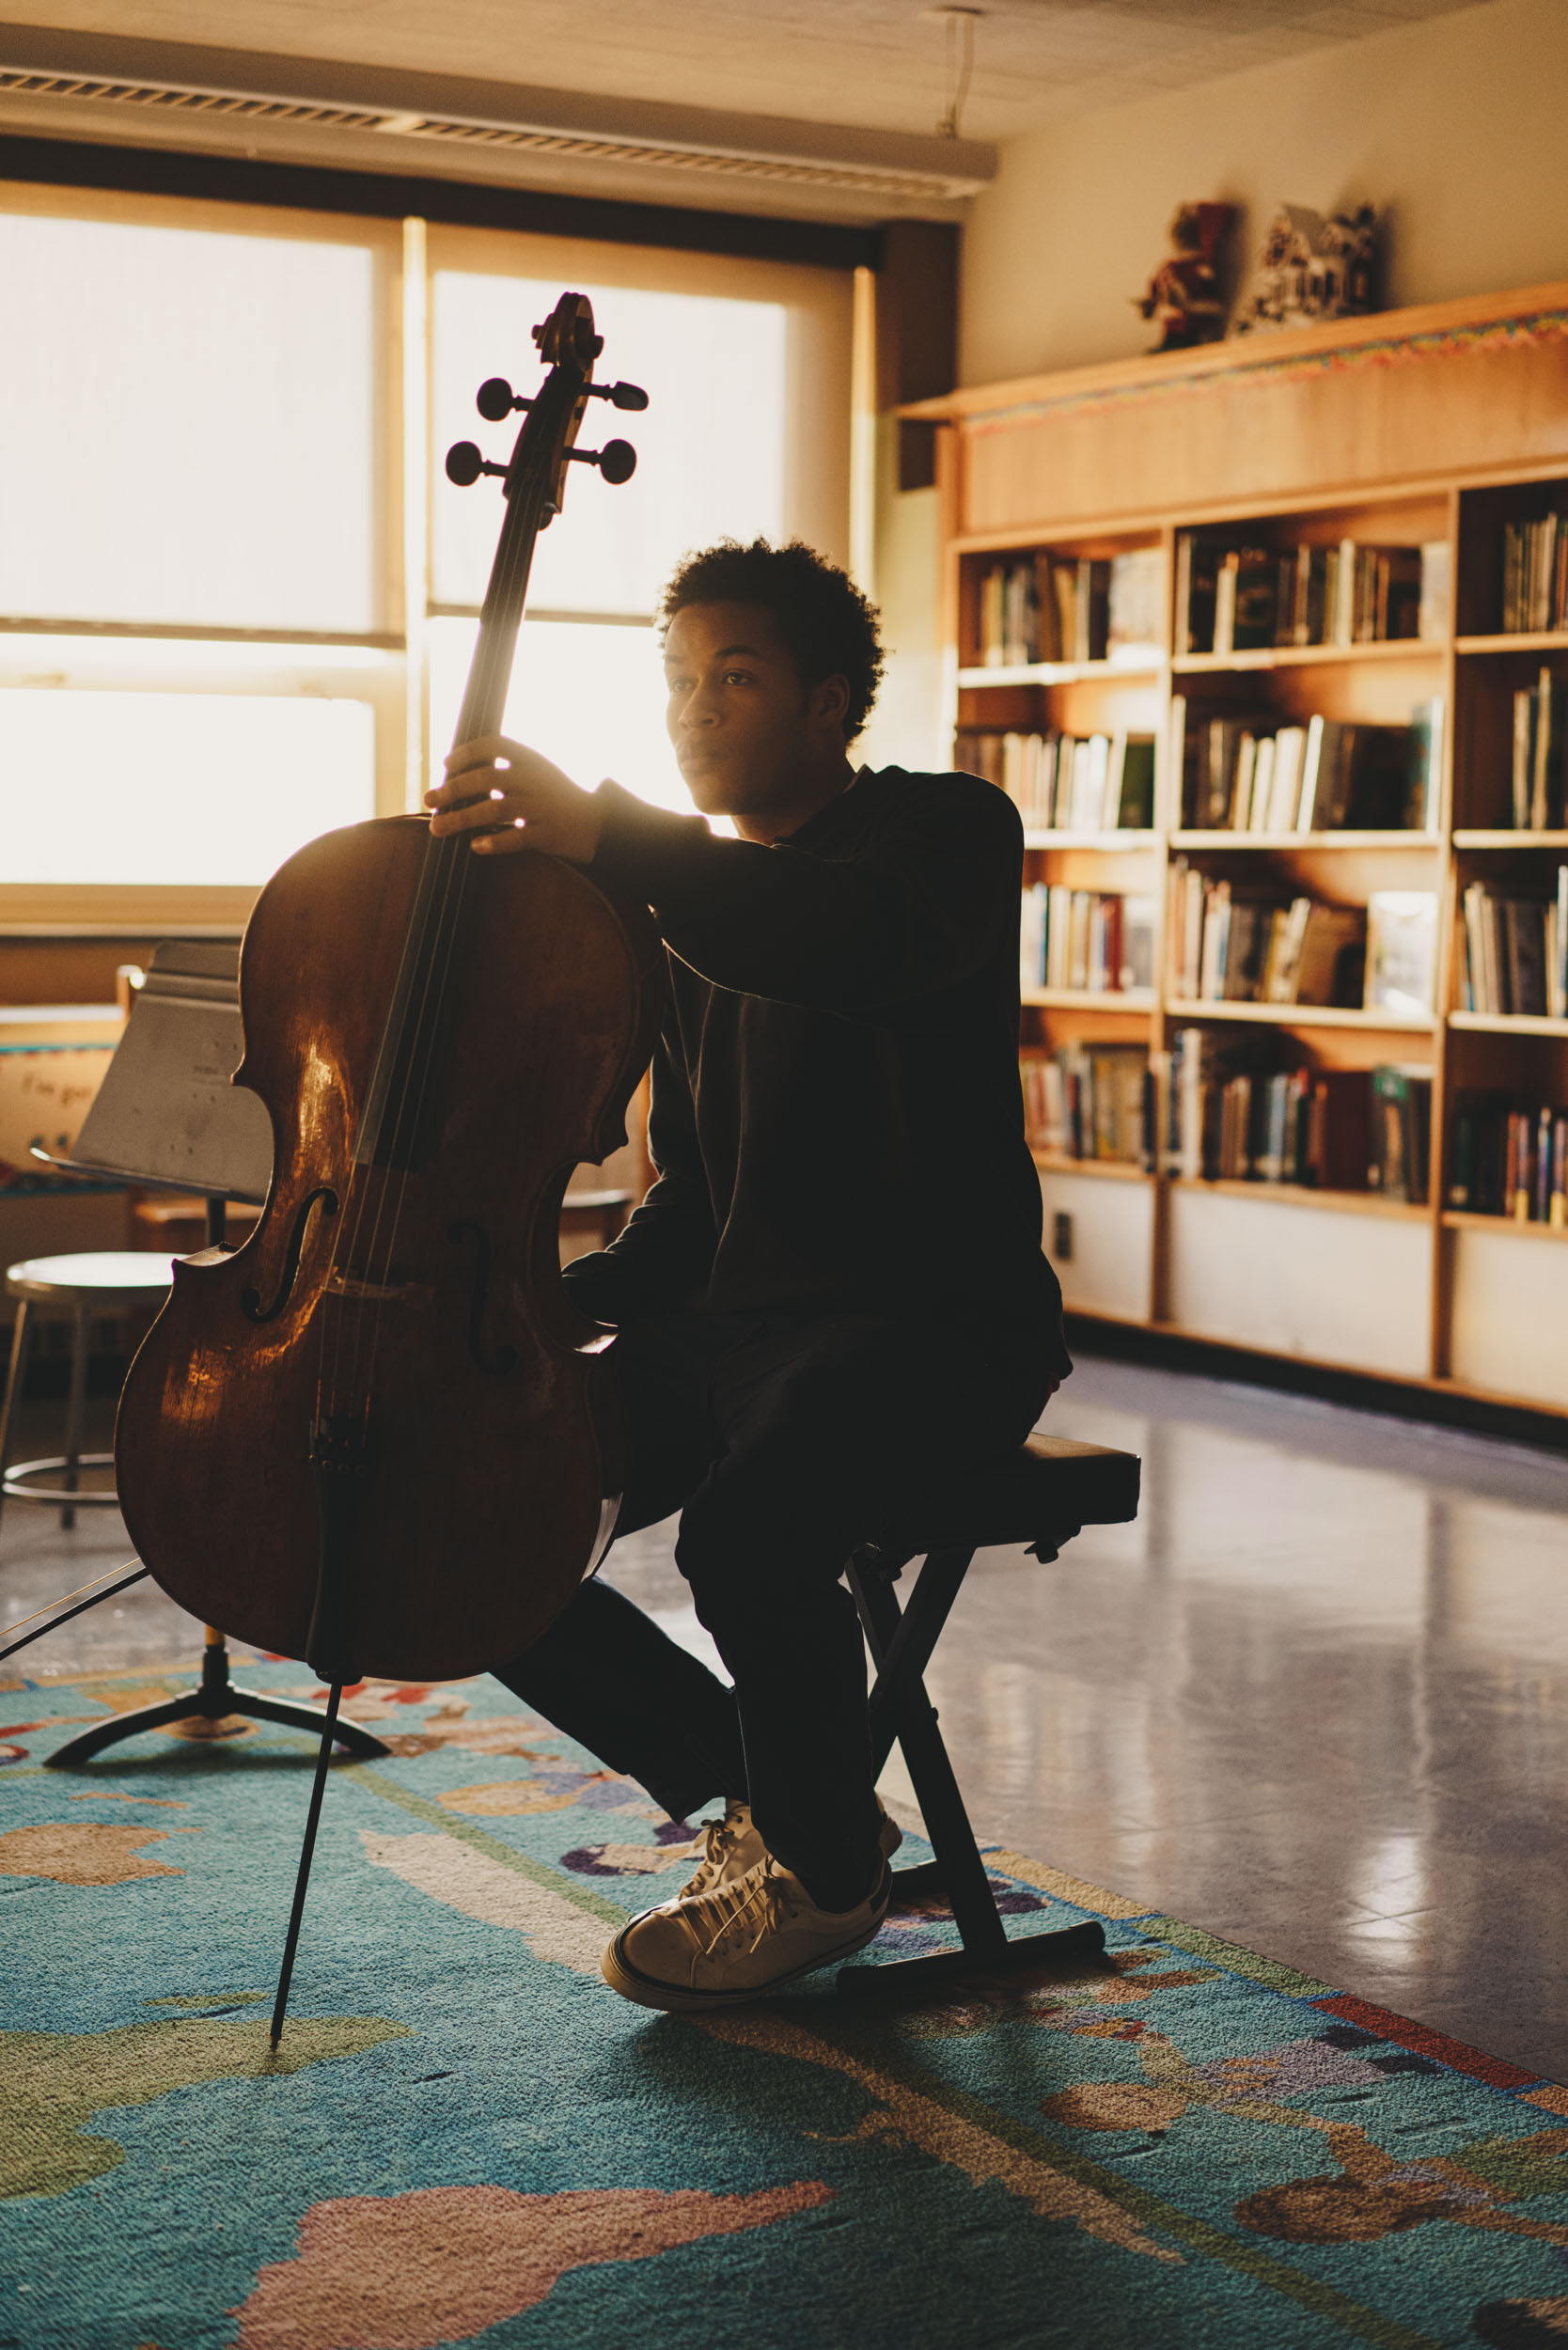 Sheku Kanneh-Mason, a famous cellist from London, practices in a classroom at Mary Ann Winterling Elementary School